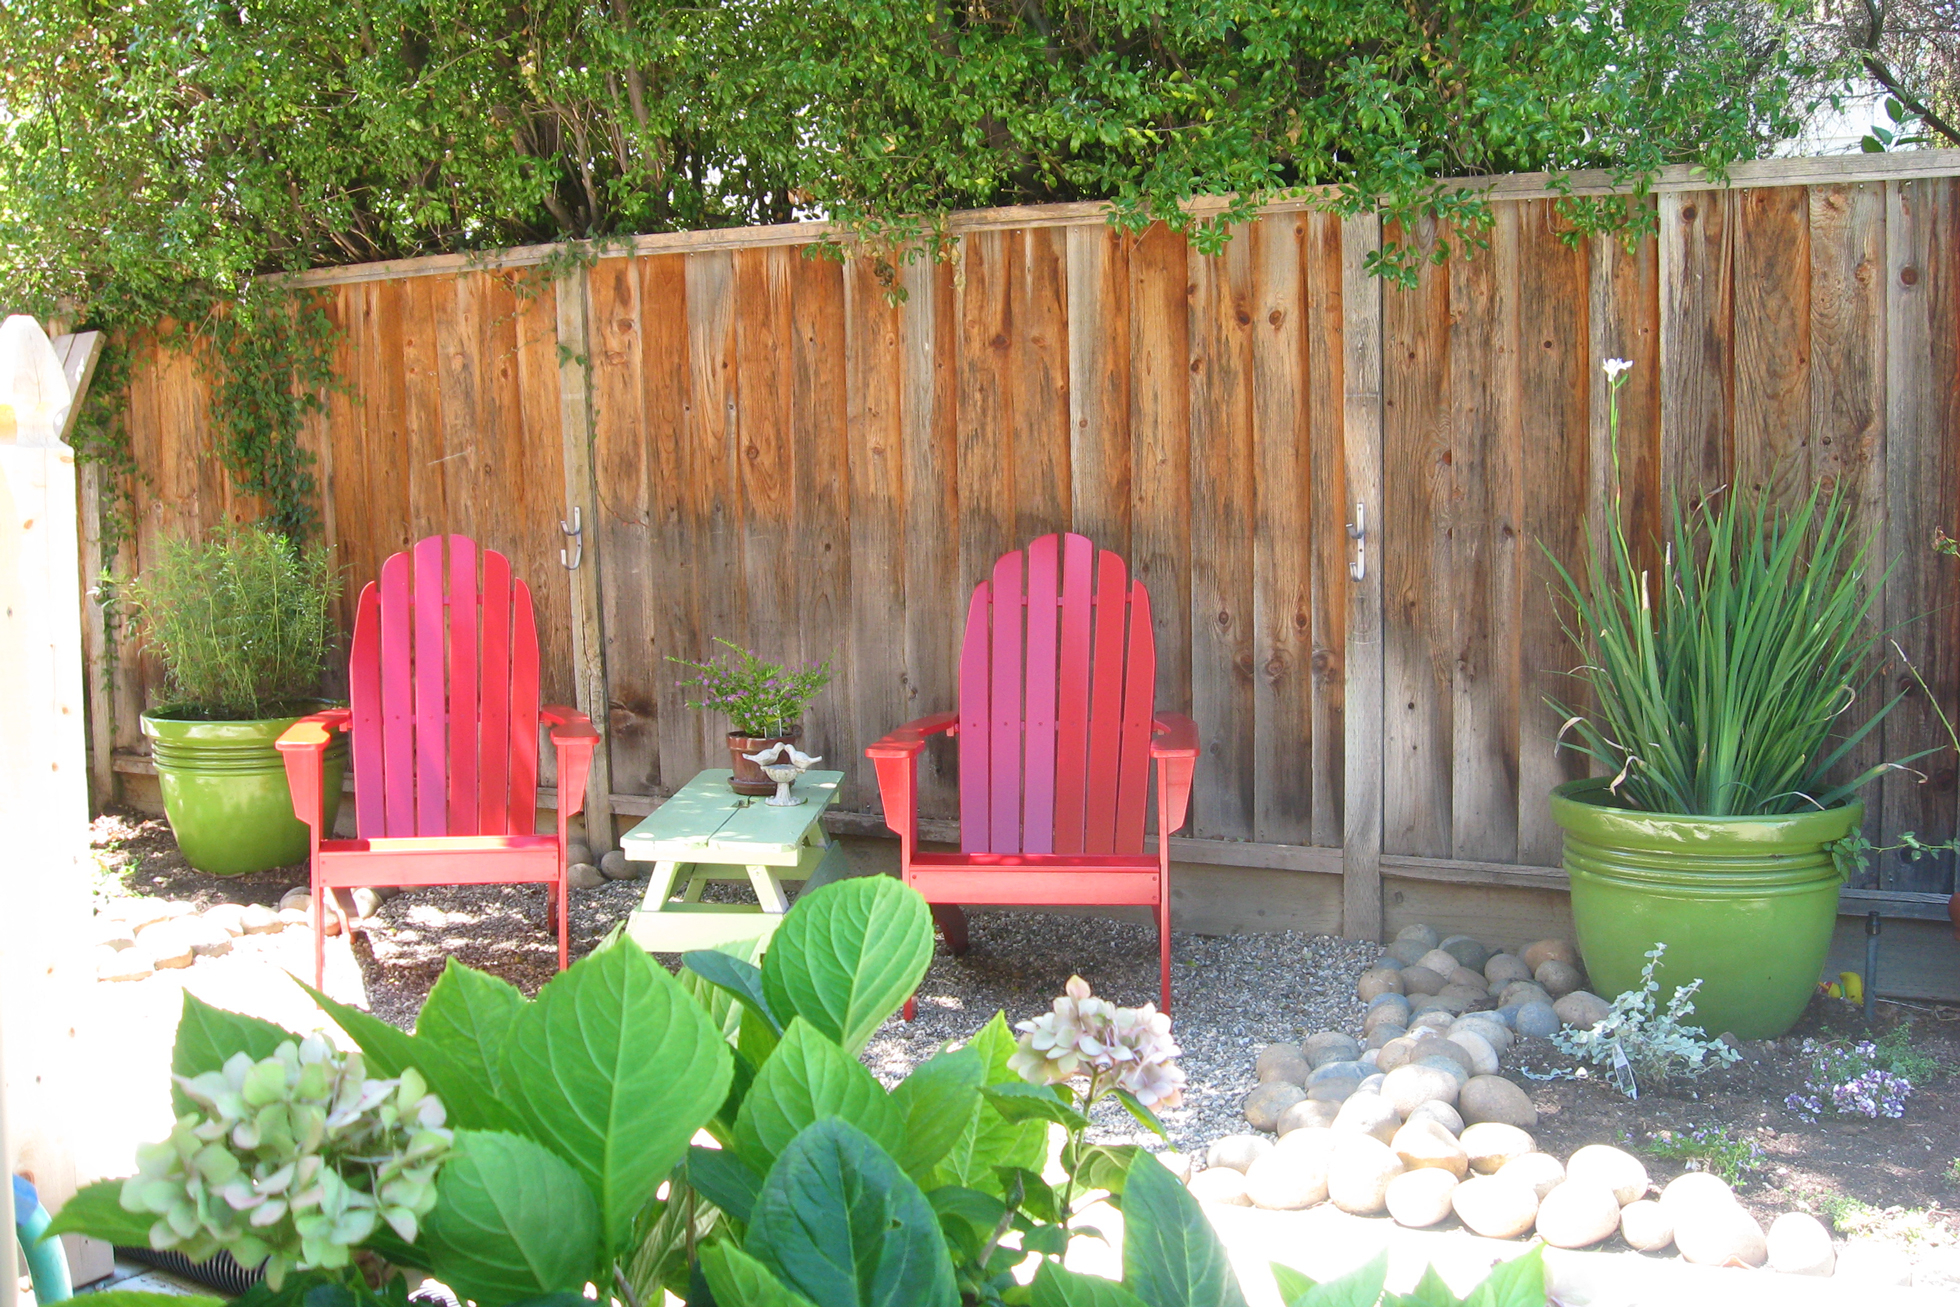 8 Simple And Easy Landscaping Ideas Houselogic within 11 Smart Ways How to Build Basic Backyard Landscaping